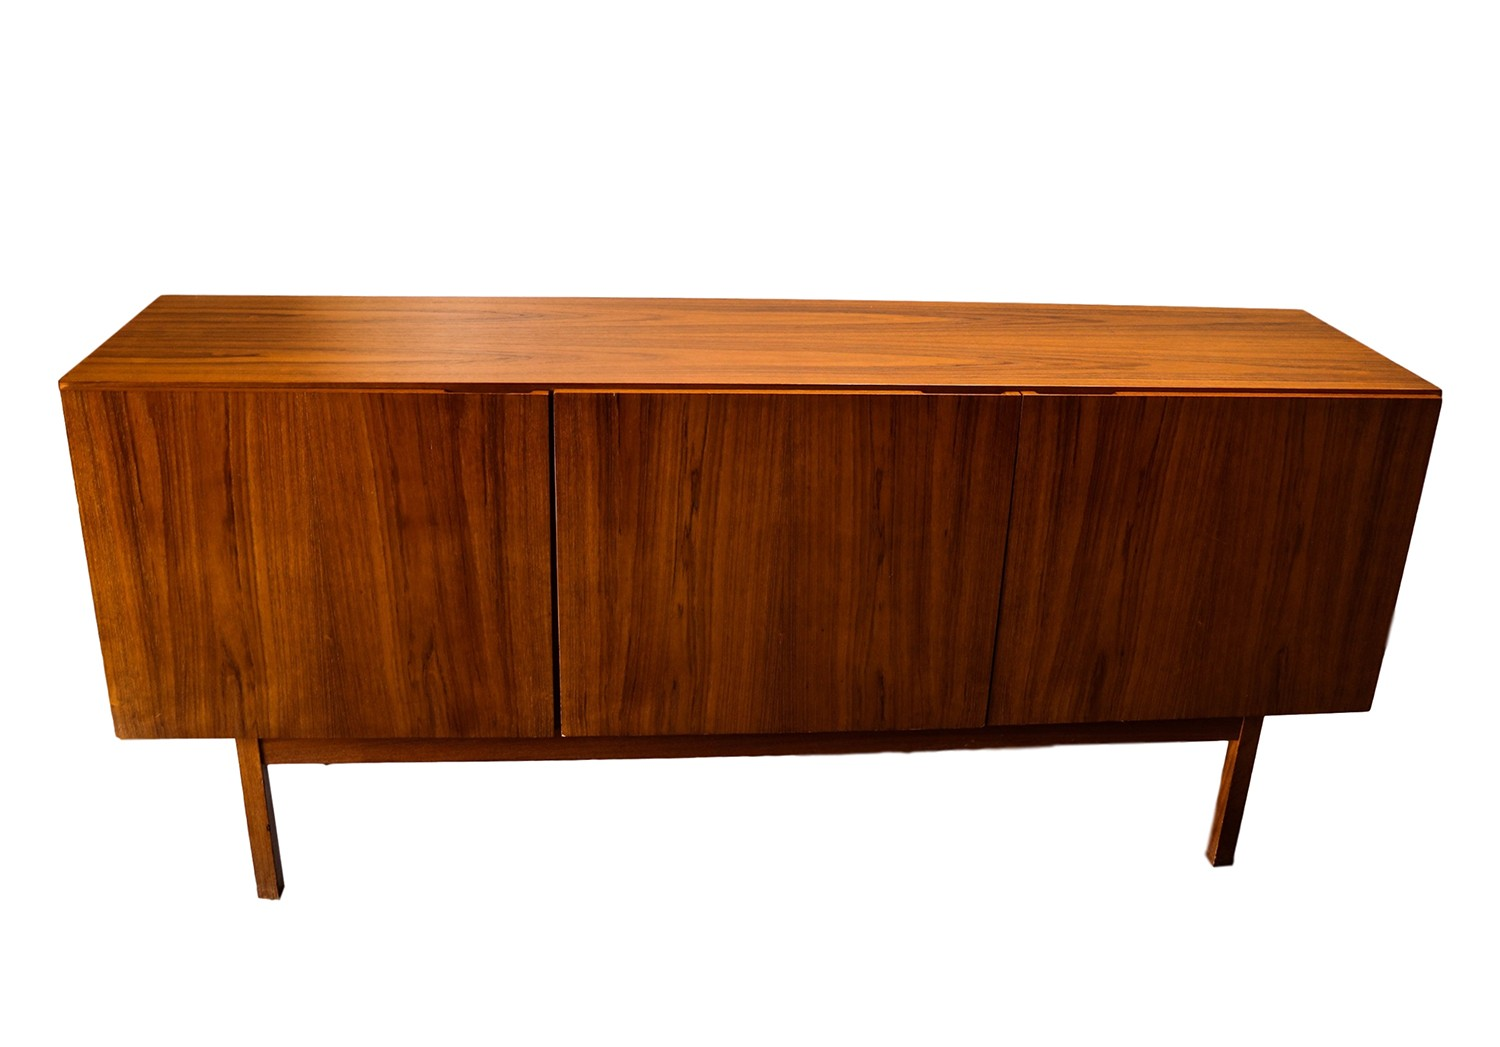 Danish Design Credenza : Sideboard danish design rt möbel model